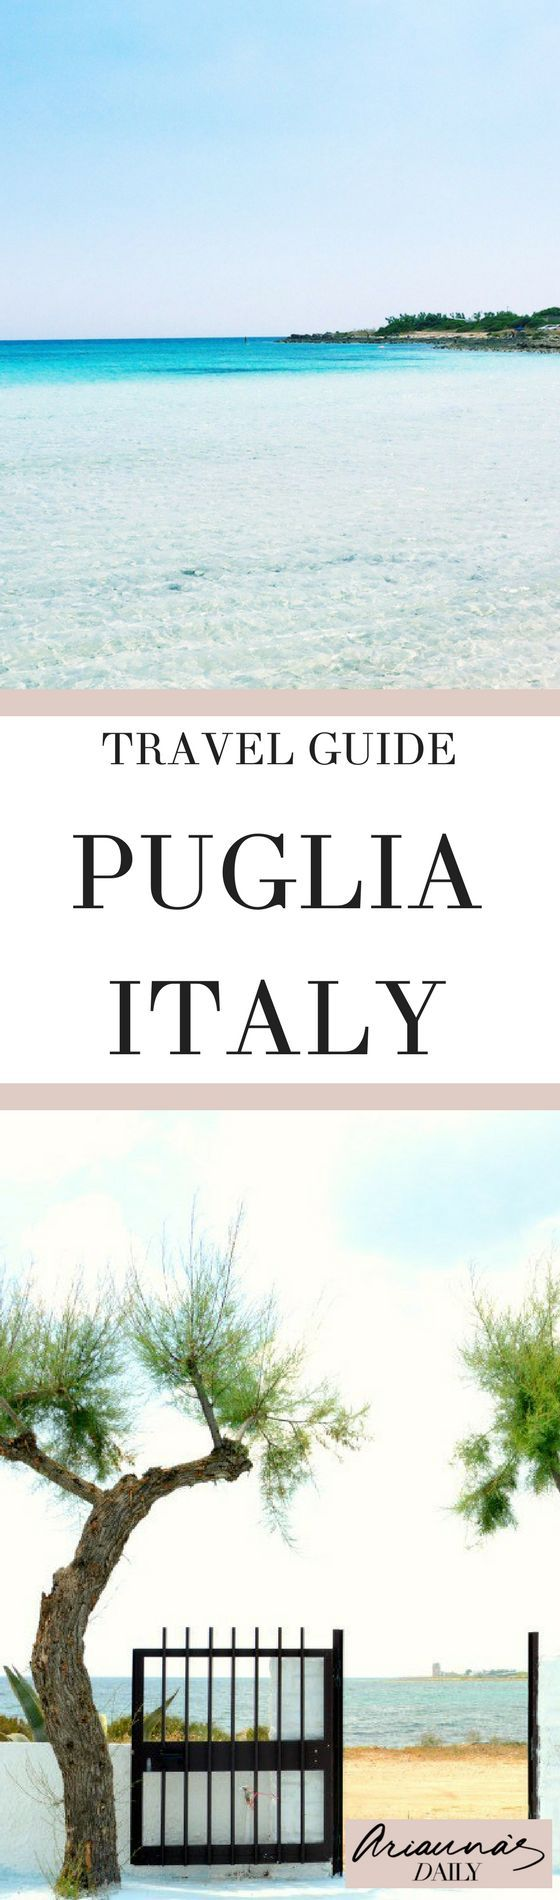 A wonderful travel guide to Puglia, Italy, ideal for summer holidays 2018 and beyond. Including white sandy beaches at Punta Proscuitto and the historic city of Lecce #italy #puglia #travelblogger